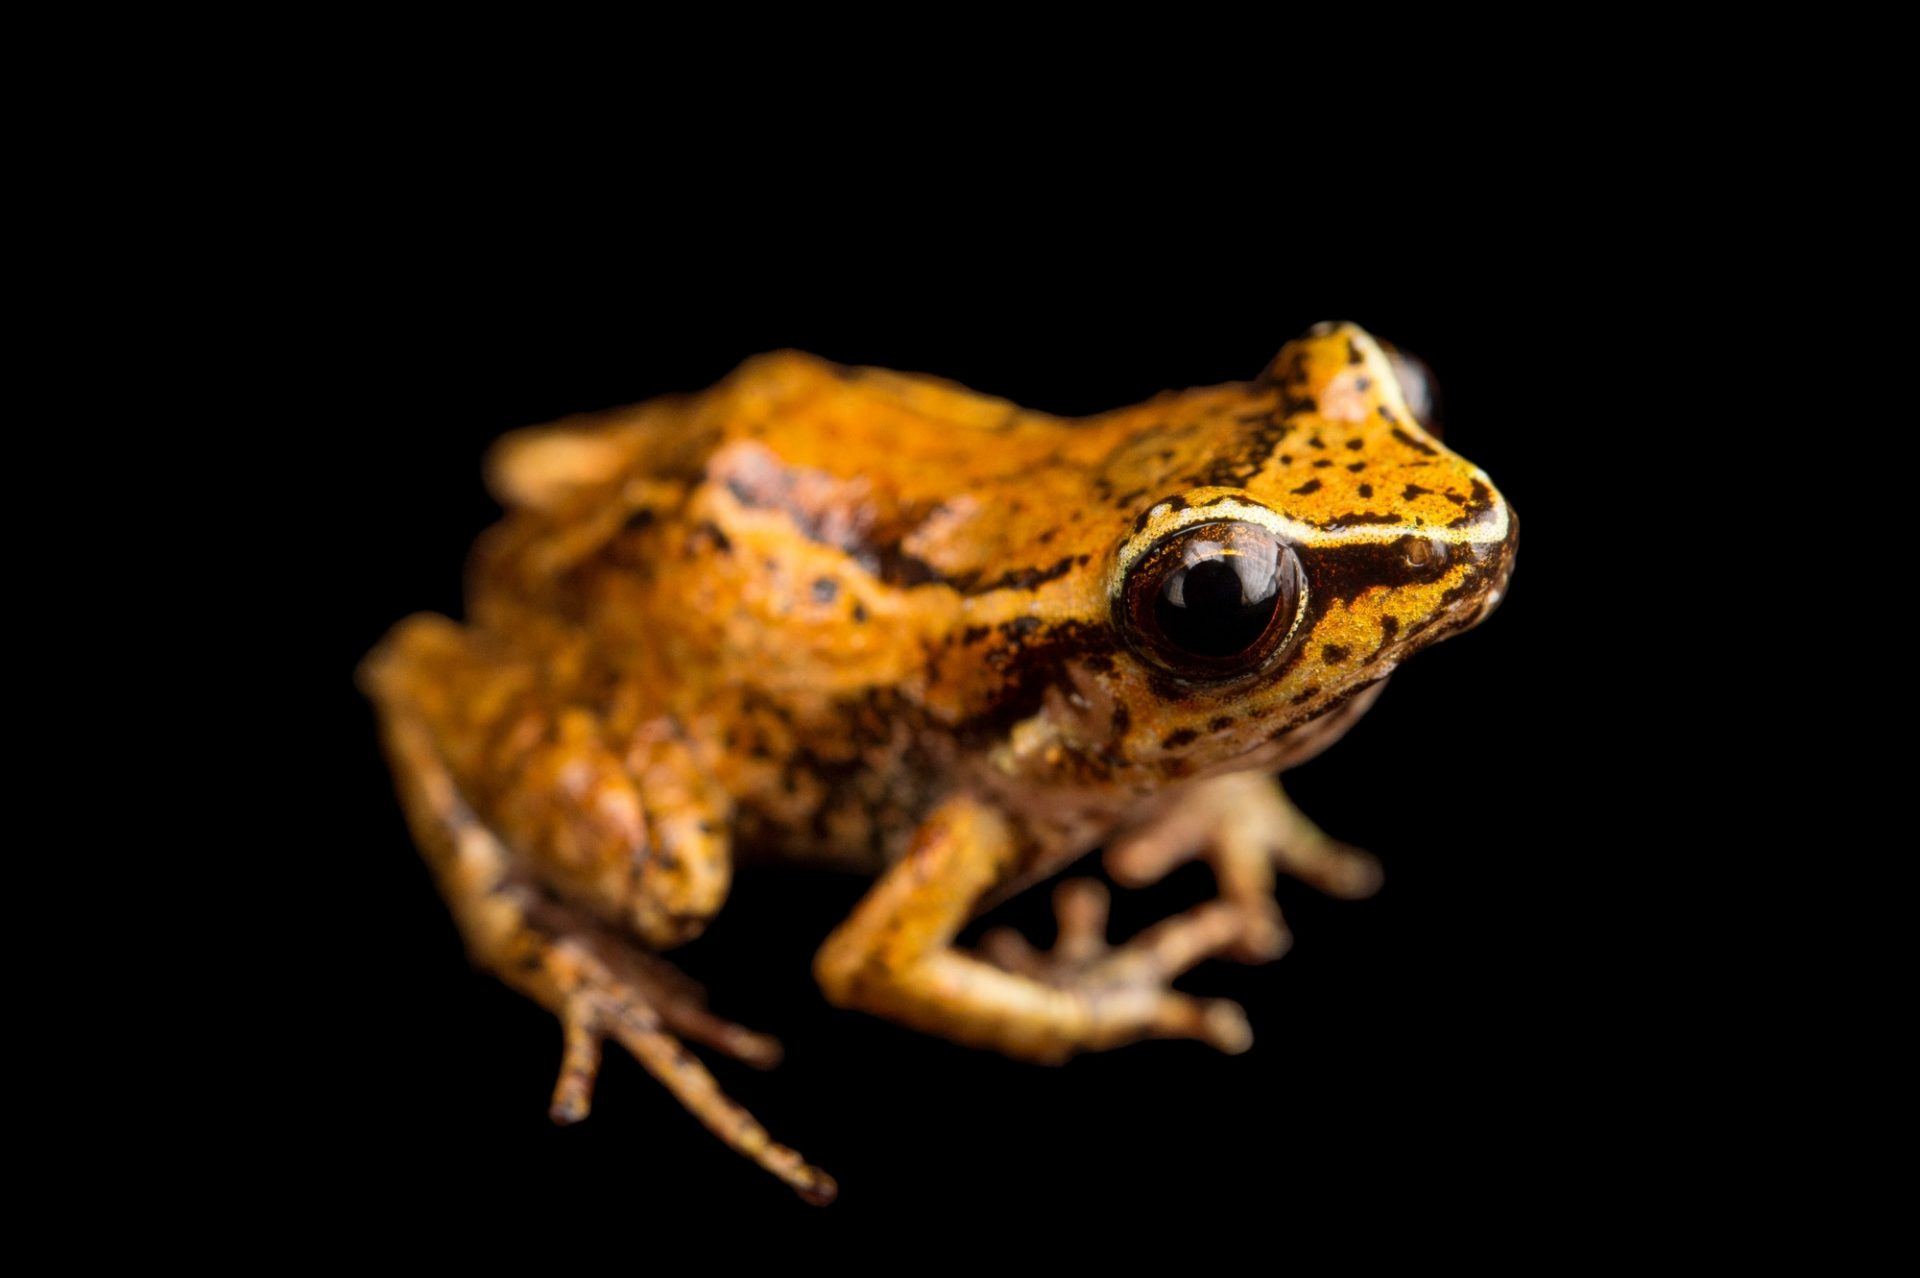 Photo: Macaya breast-spot frog (Eleutherodactylus thorectes) at the Philadelphia Zoo. This species is found in Haiti and is critically endangered.